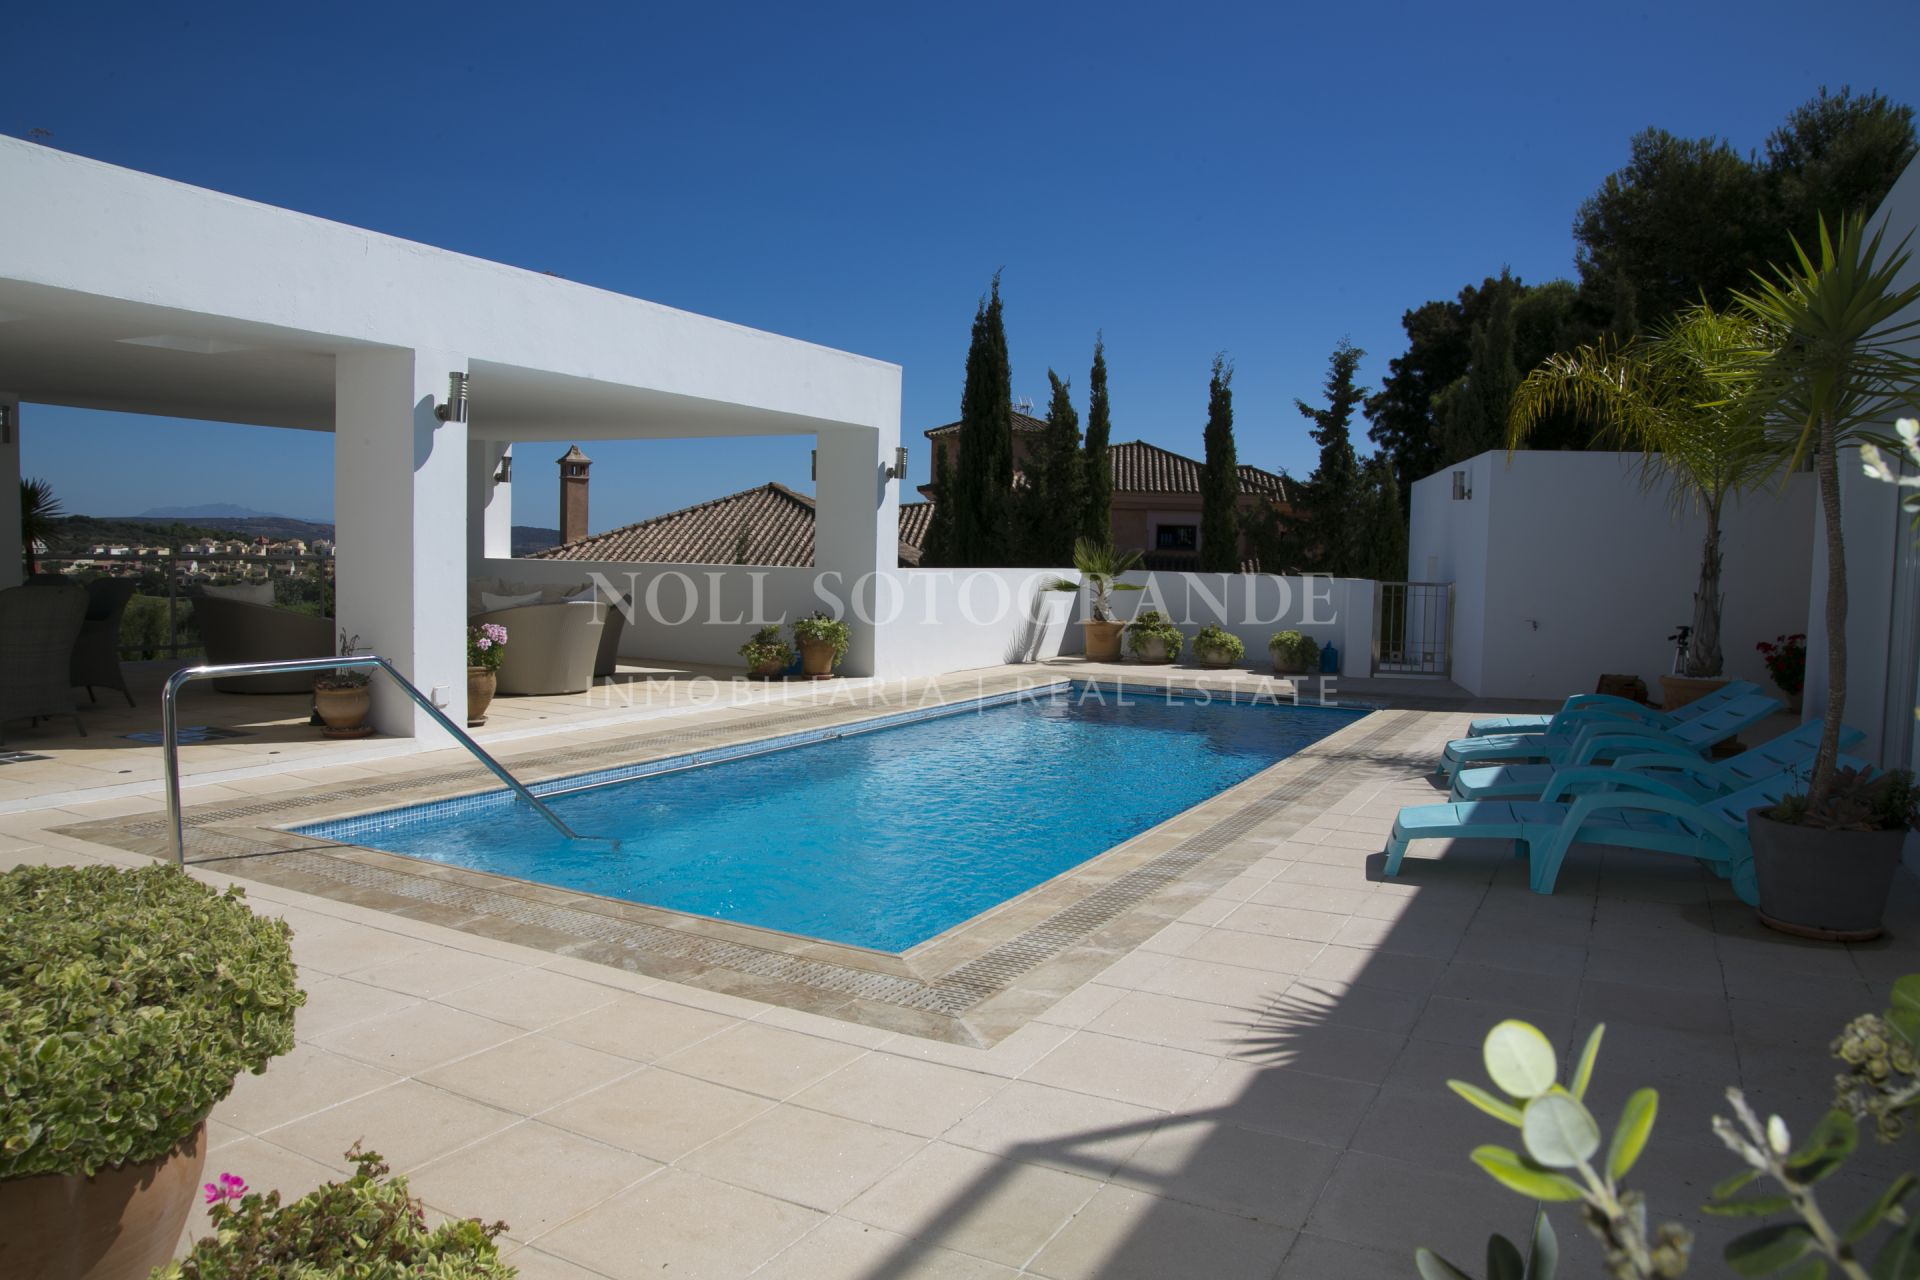 Refurbished modern villa offering spectacular views over La Reserva Golf golf course towards the mountains and the sea.